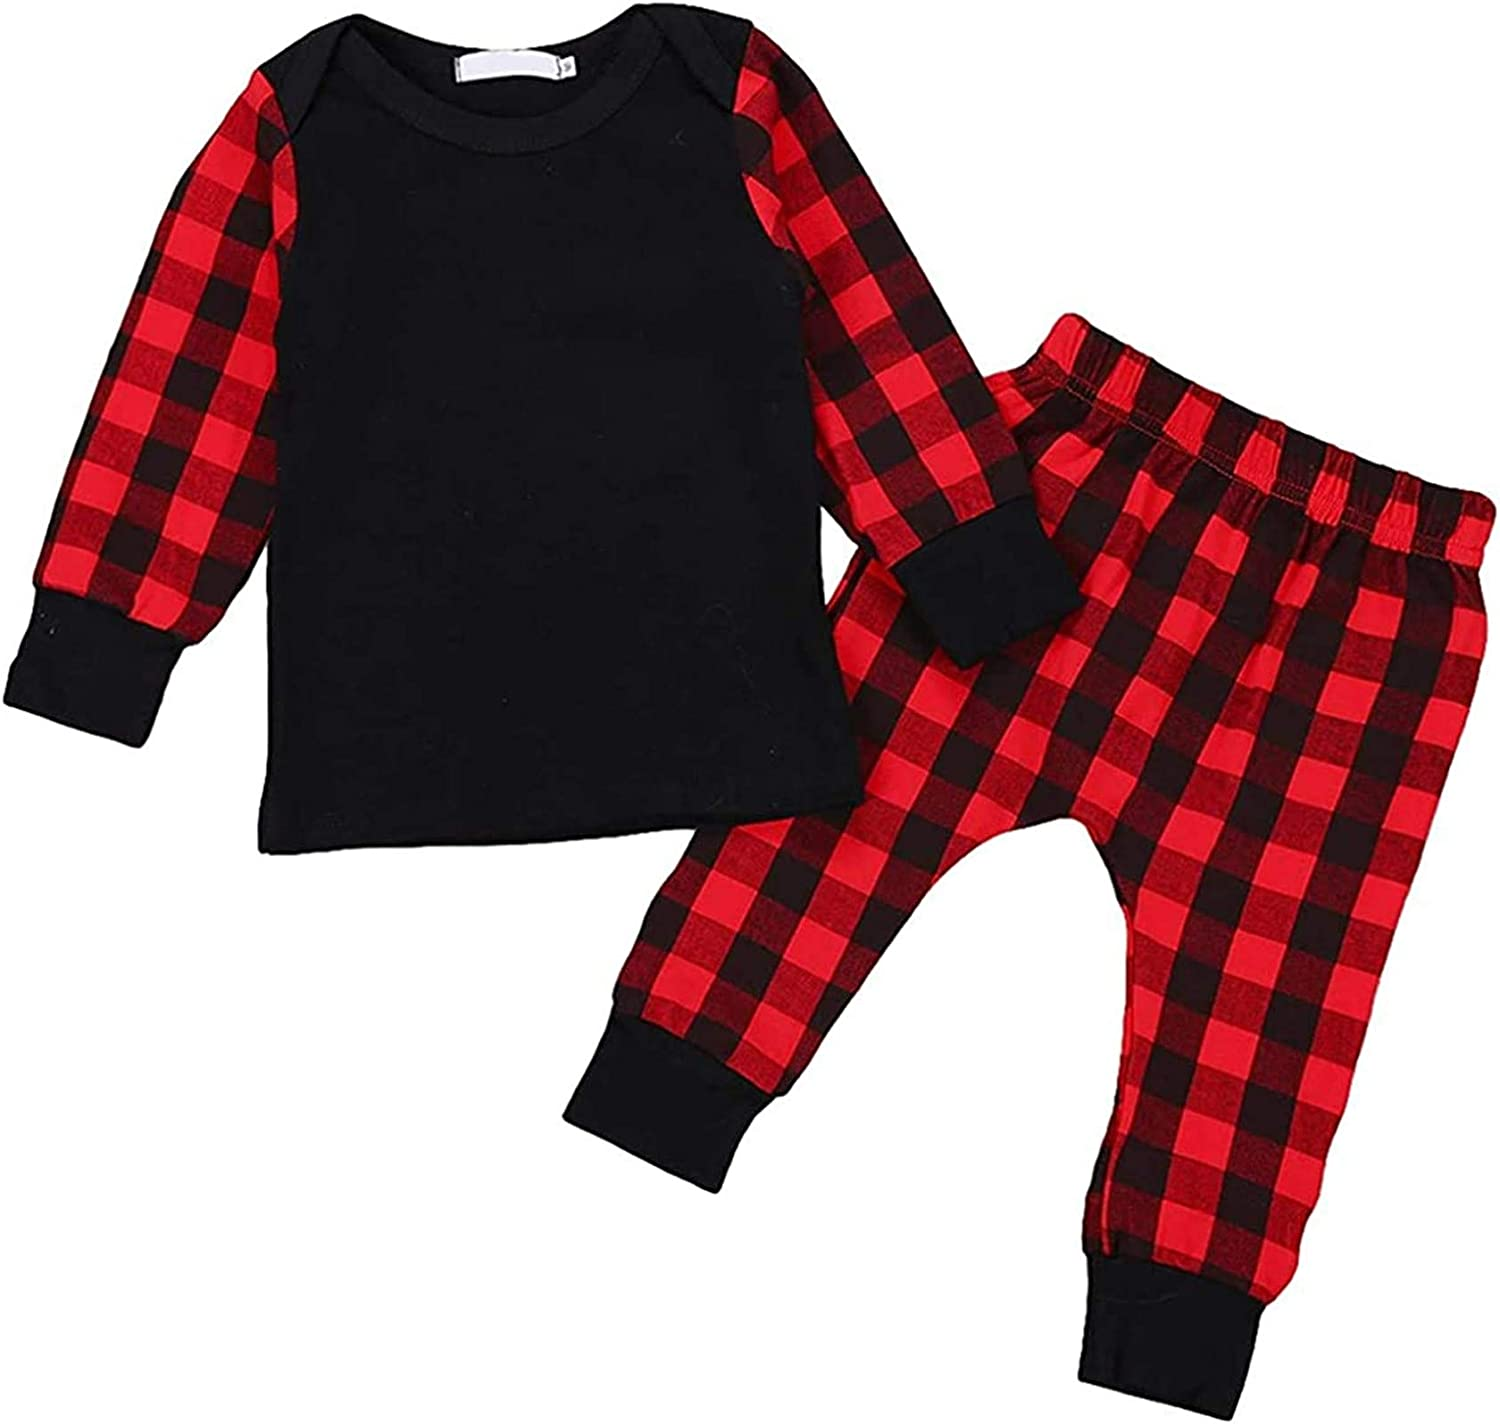 Baby Boys Girls Matching Christmas Clothes Red Plaid Top T-Shirt and Pants Winter Outfits